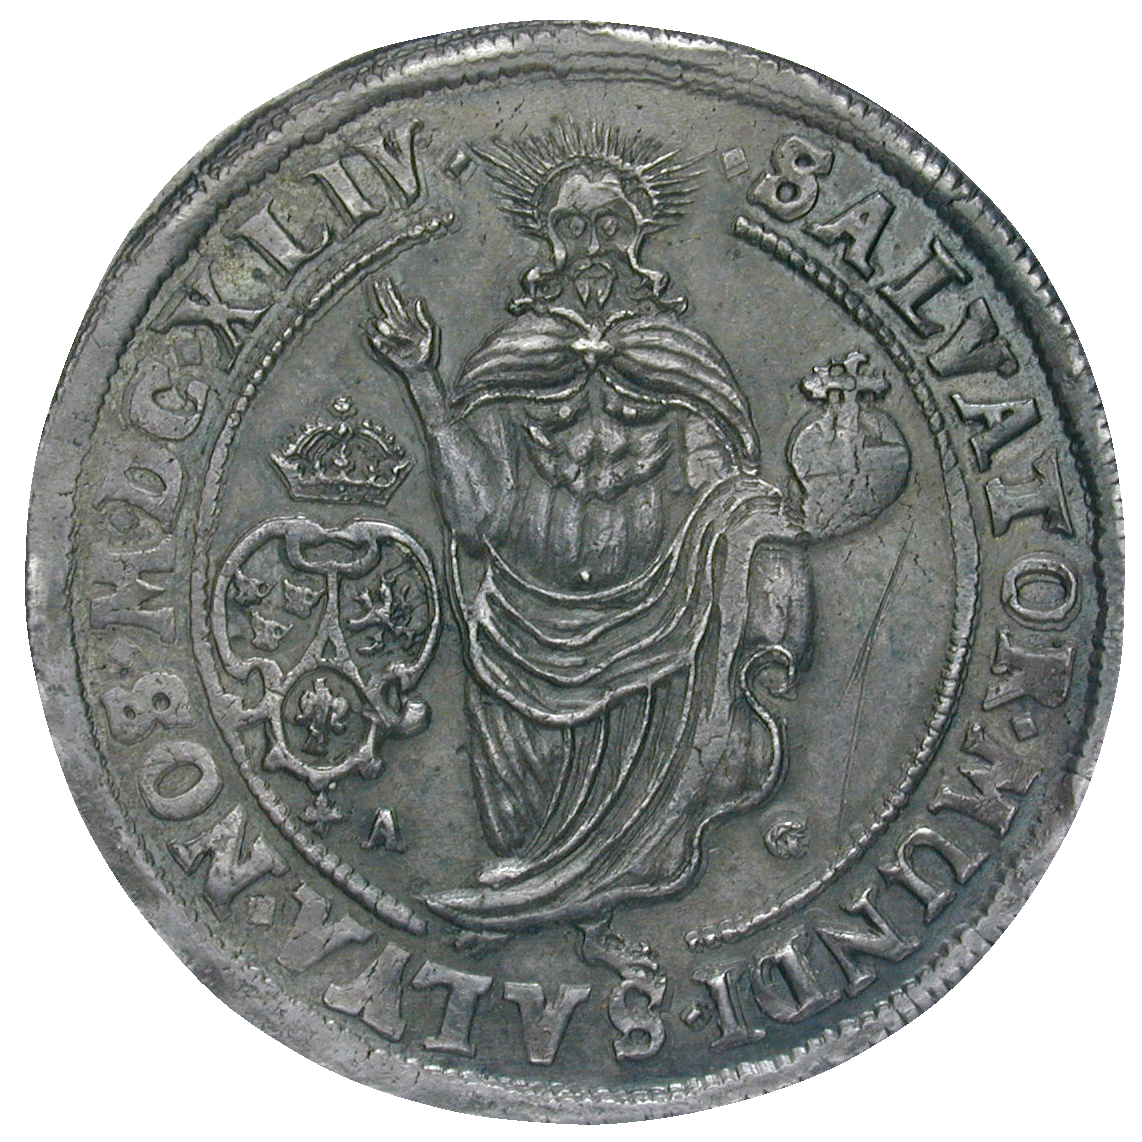 Kingdom of Sweden, Christina, Riksdaler 1644, Stockholm or Sala (reverse)